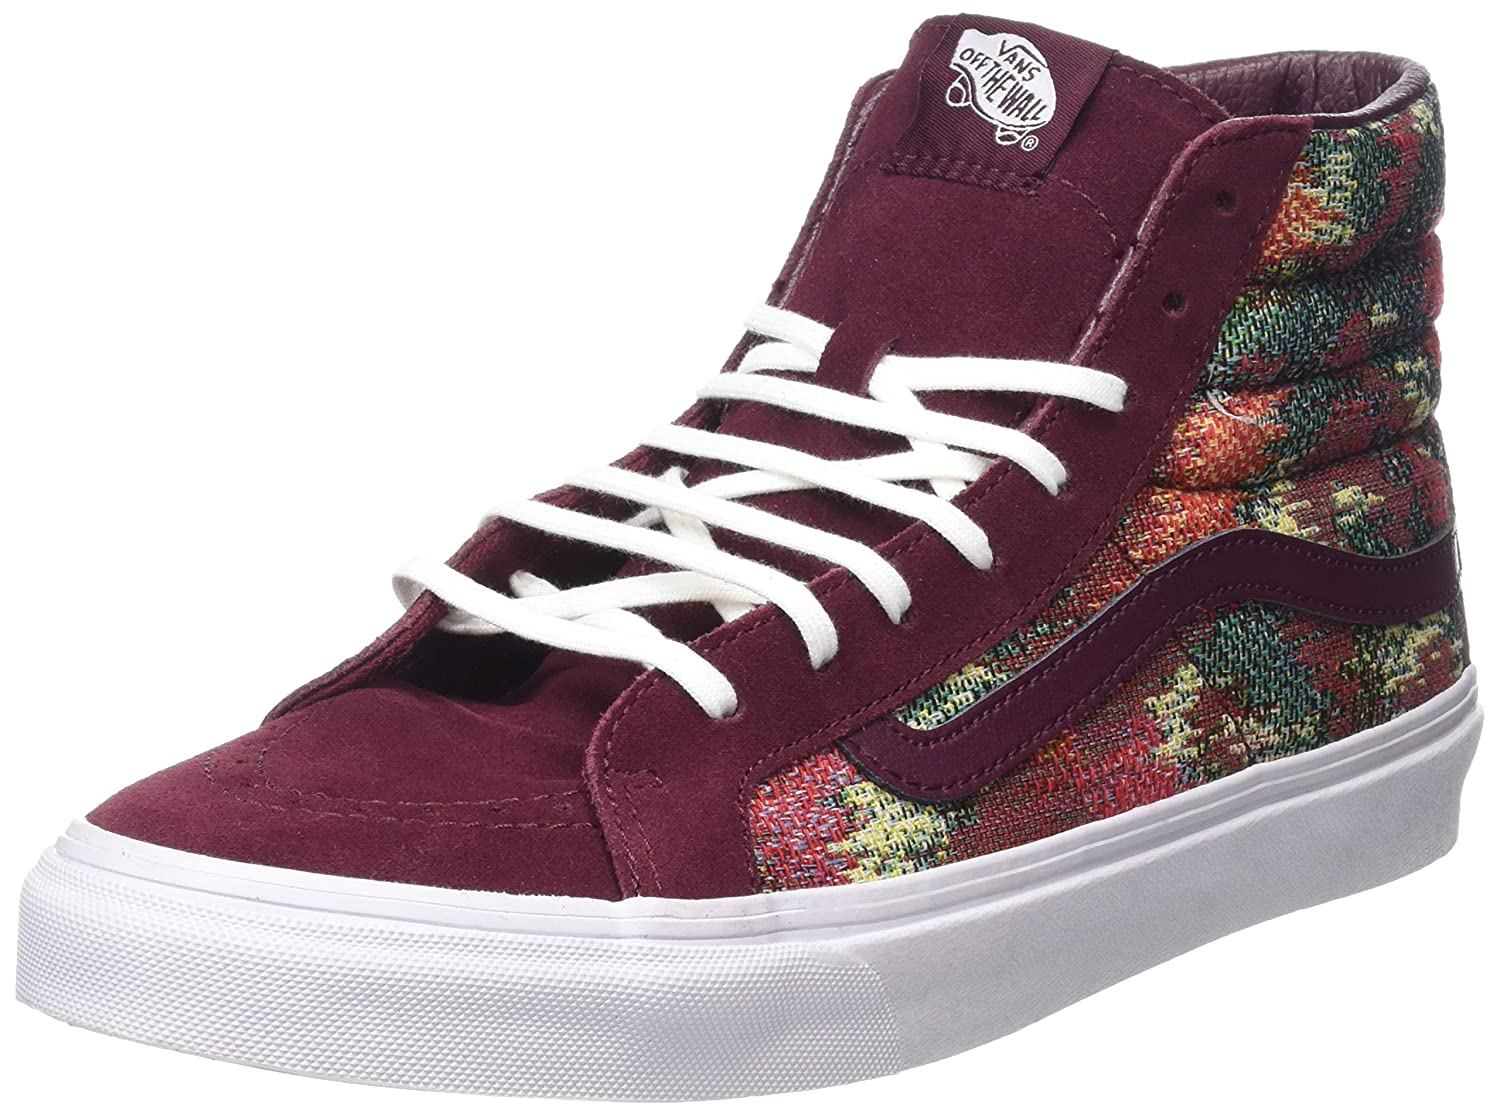 Vans Unisex Sk8-Hi Slim Women's Skate Shoe B019KY4ZYS 9.5 M US Women / 8 M US Men|Port Royale